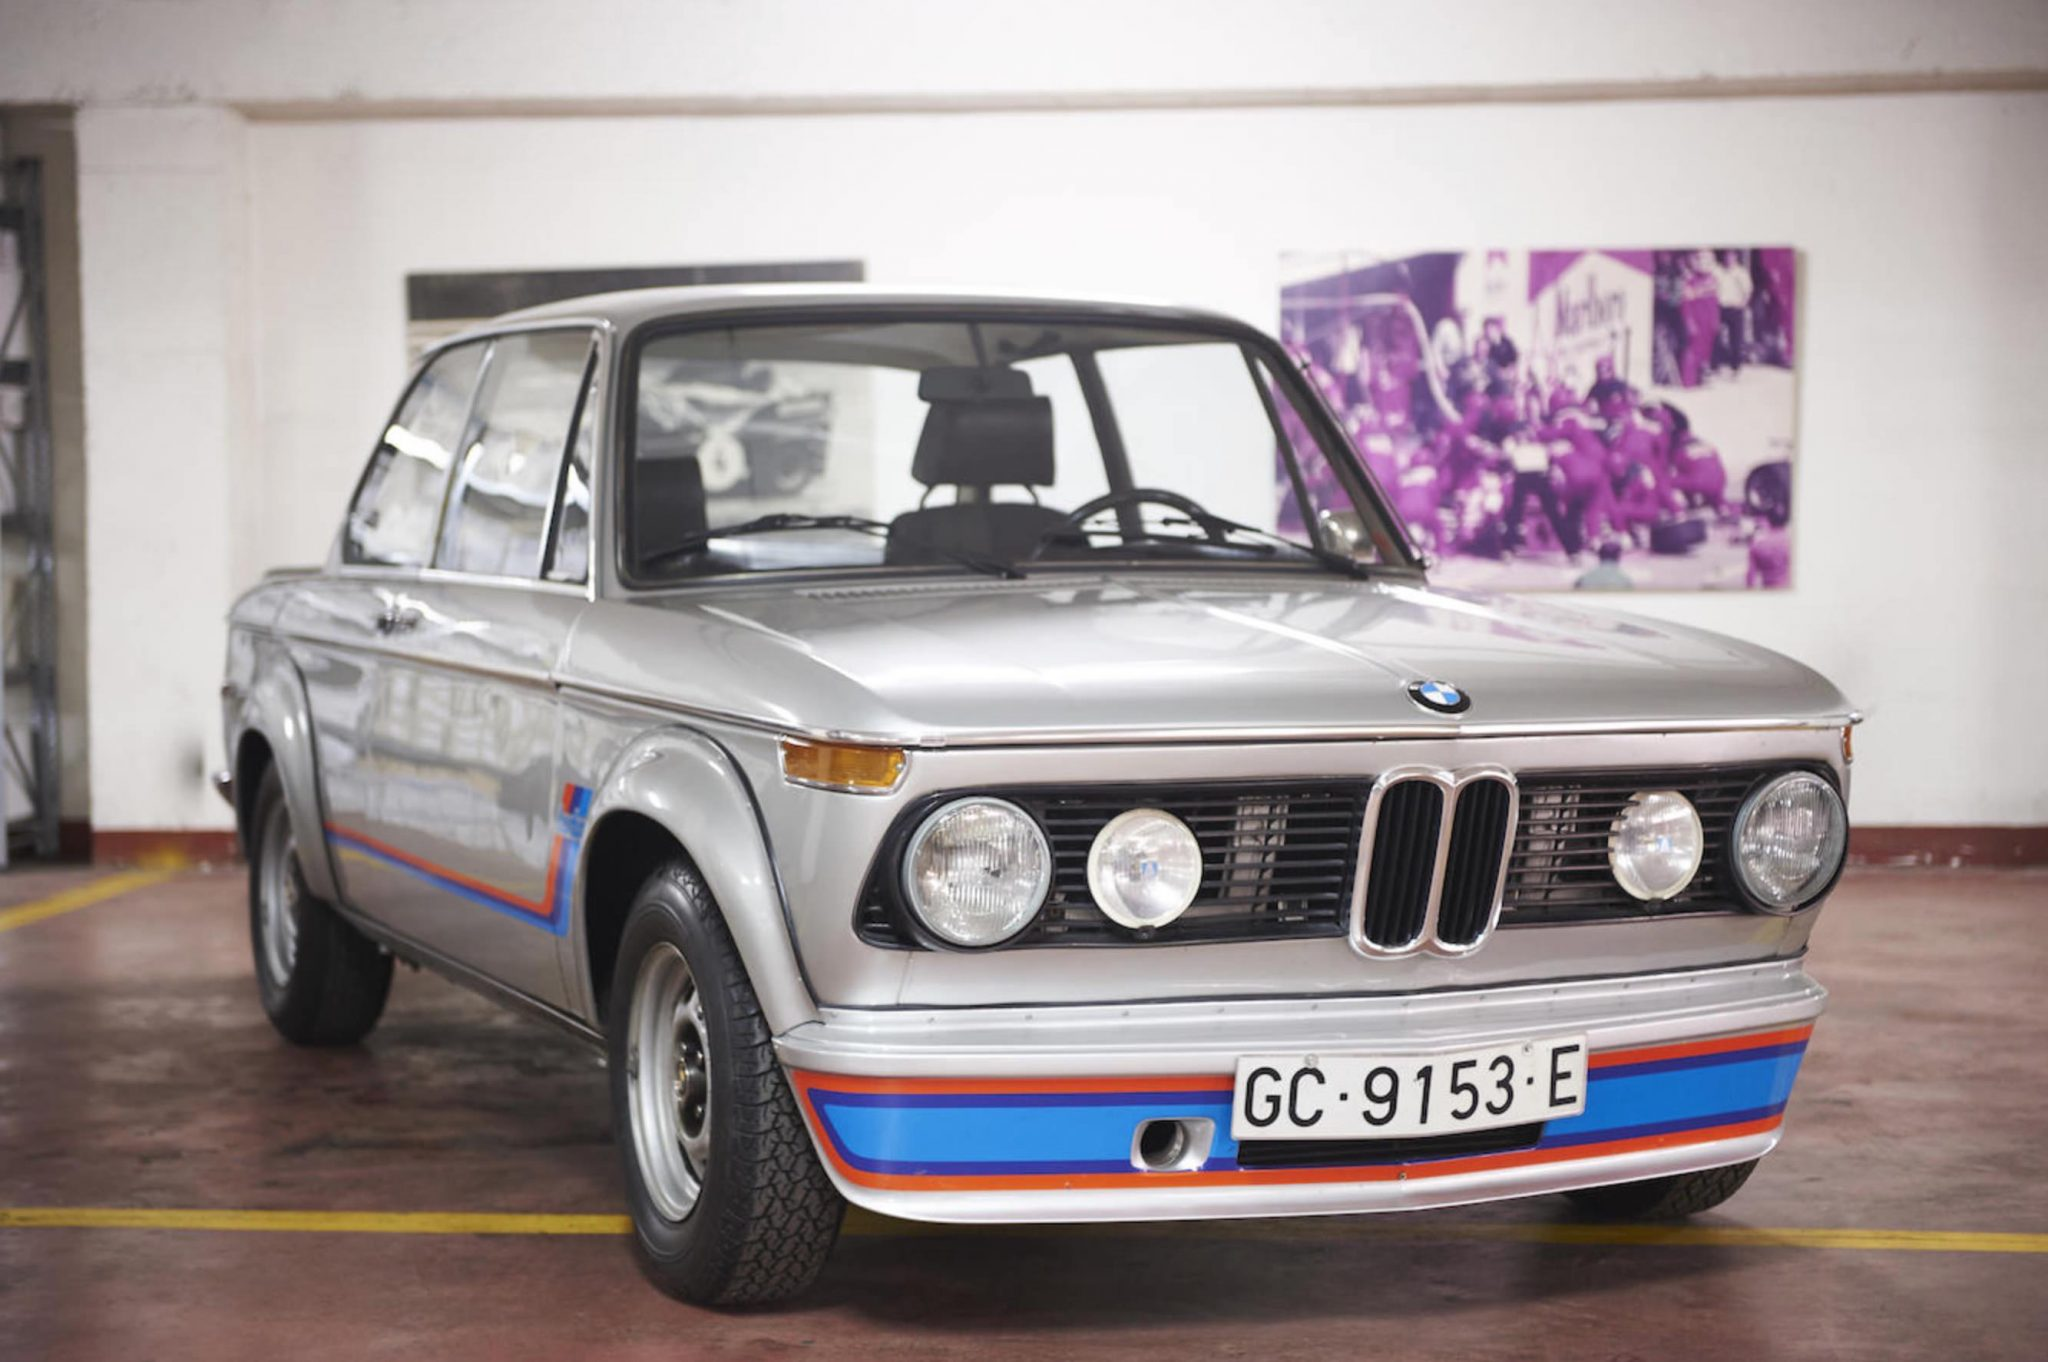 an original 1974 bmw 2002 turbo. Black Bedroom Furniture Sets. Home Design Ideas